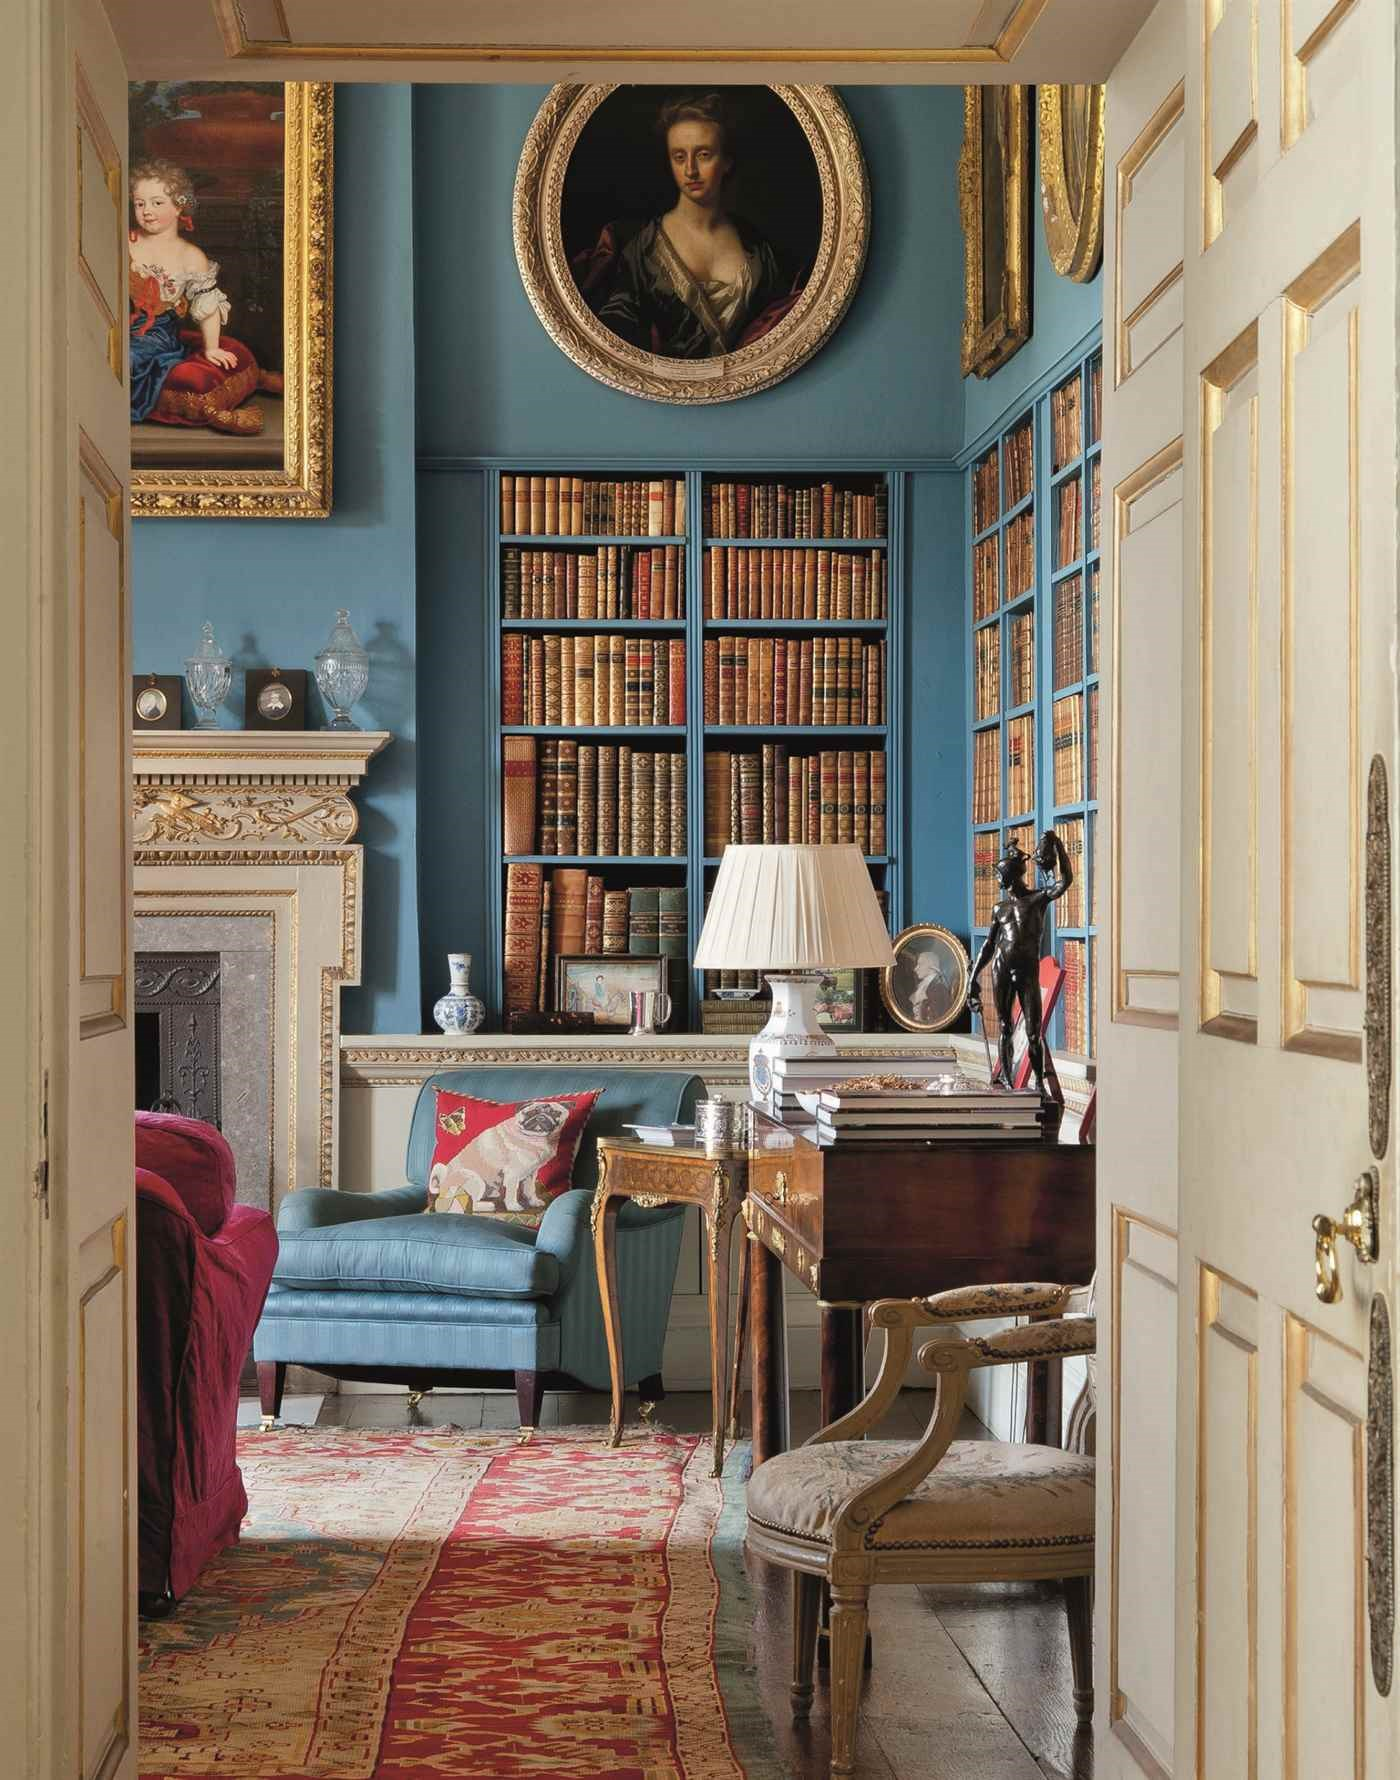 Linley Hall, Shropshire: A Sel auction at Christies